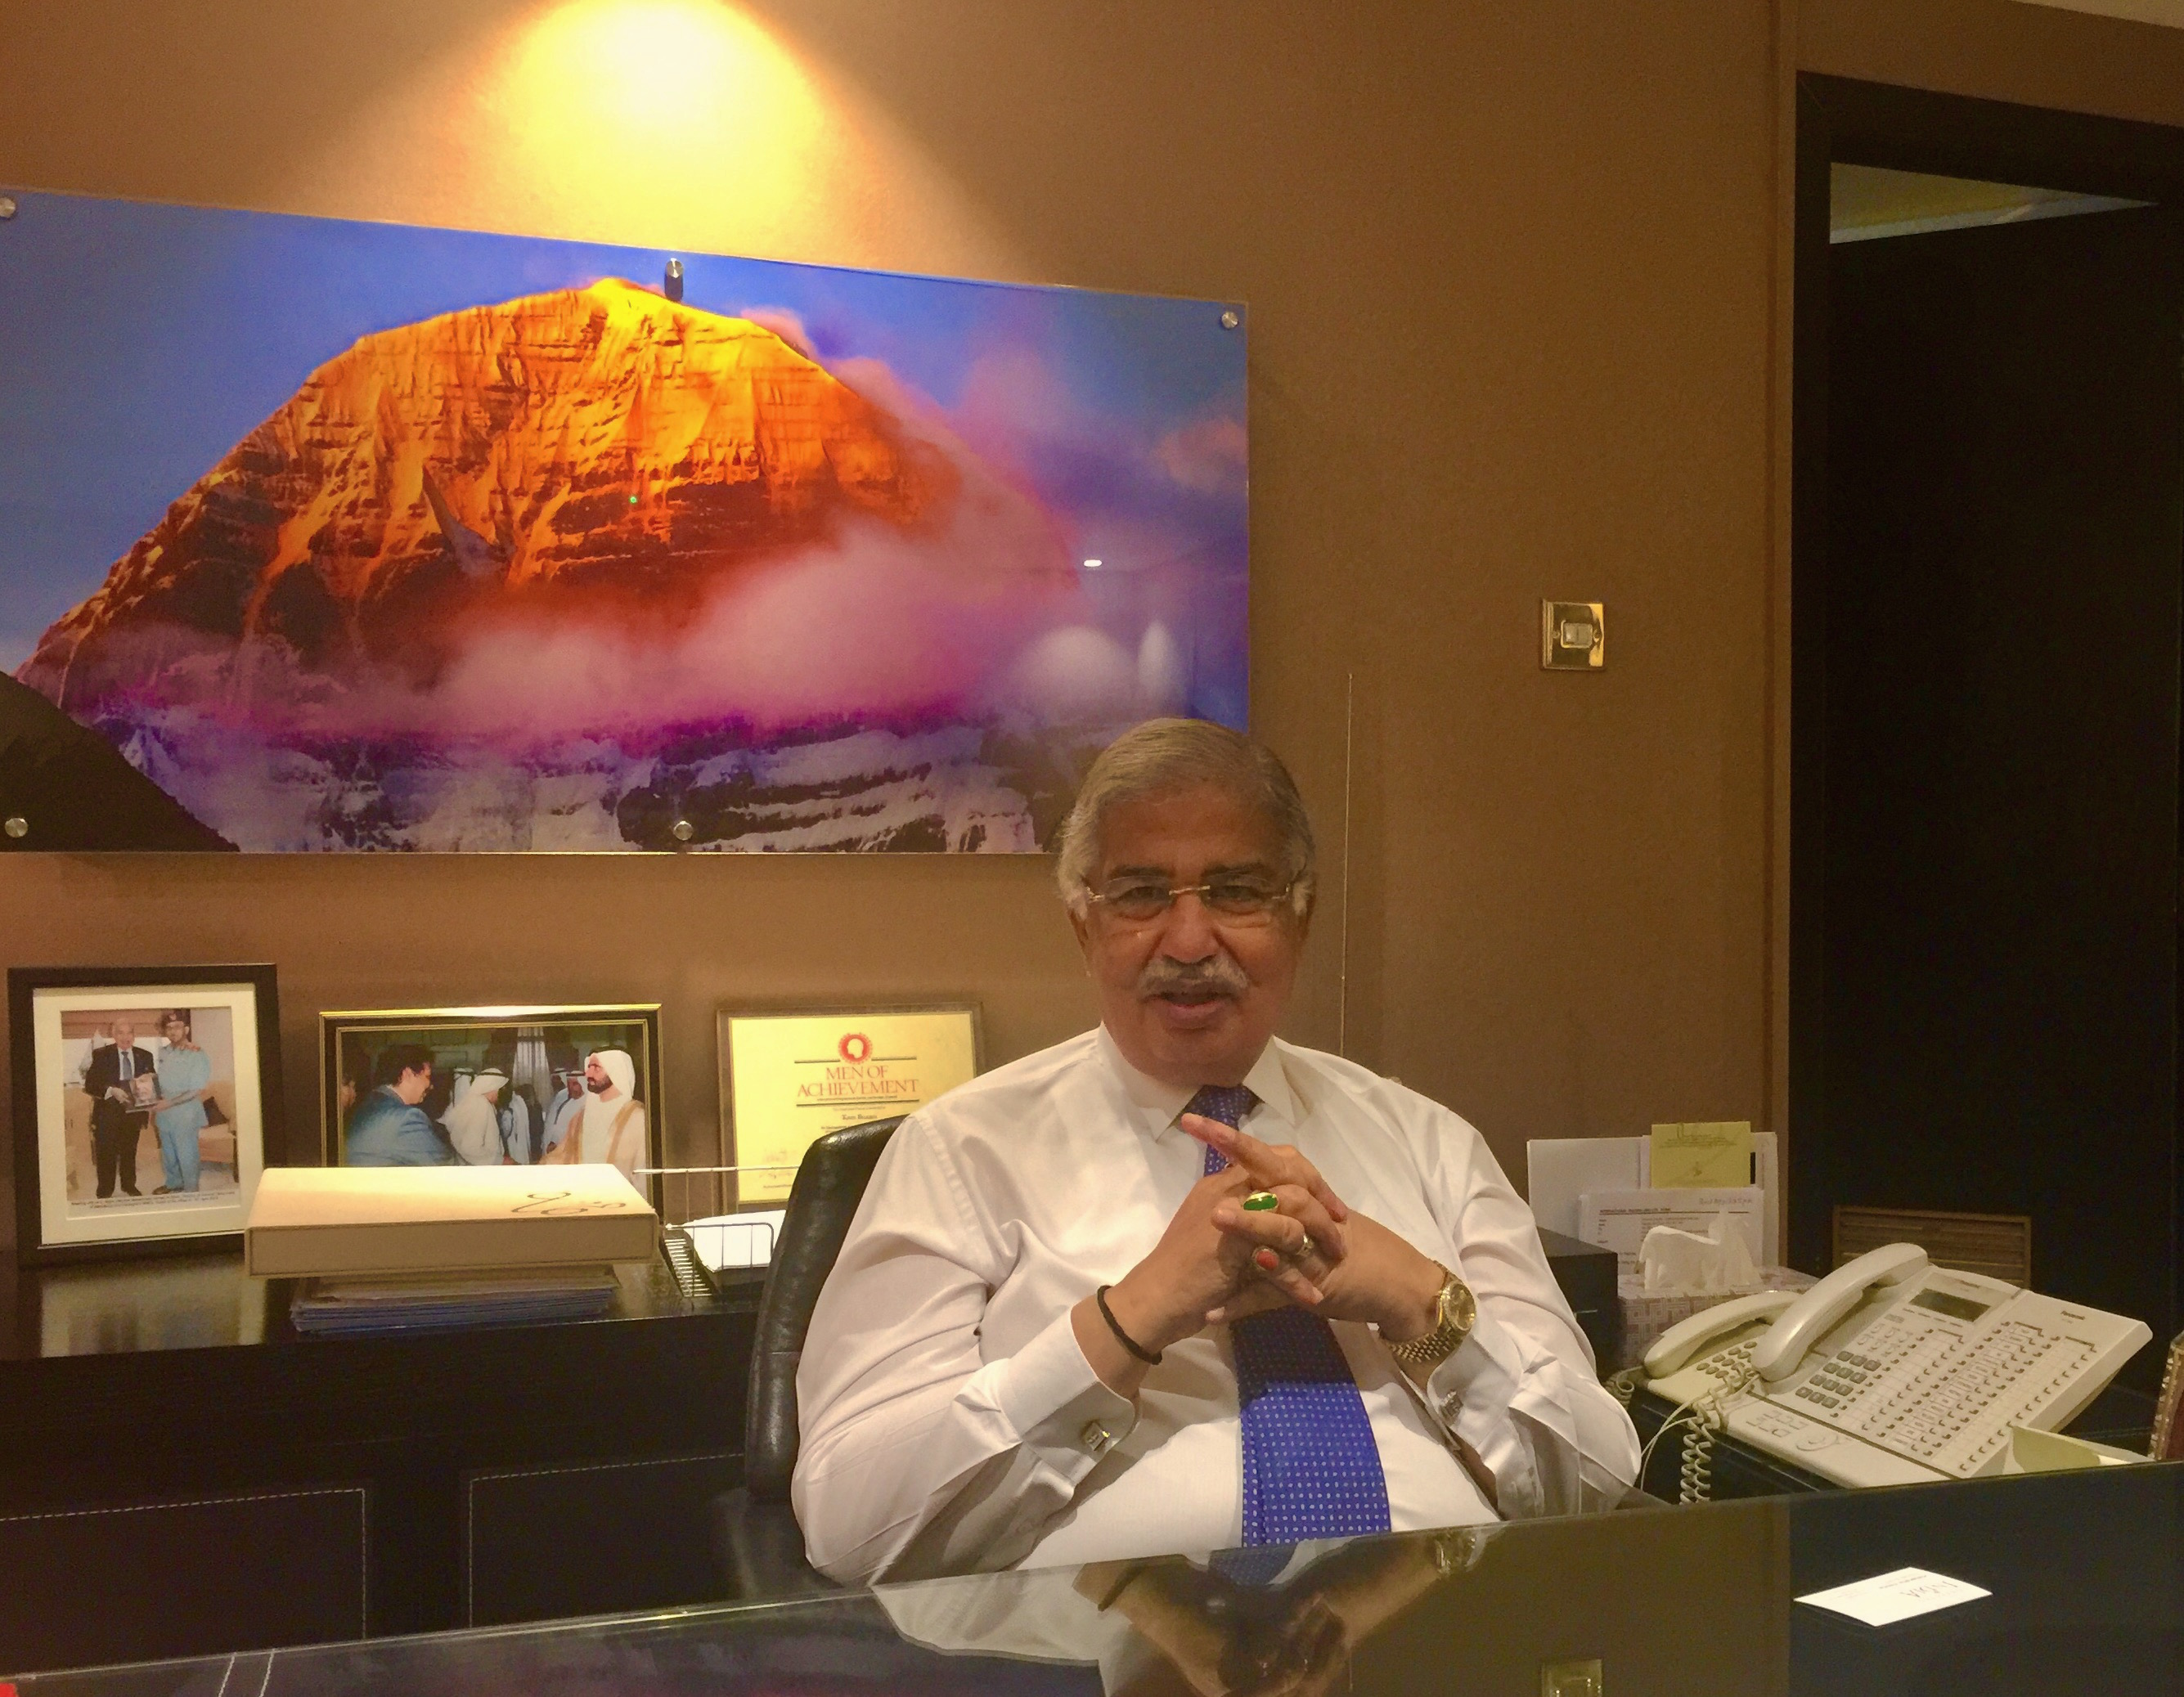 Dr Ram Buxani, Chairman, ITL Cosmos Group in his office in Dubai.